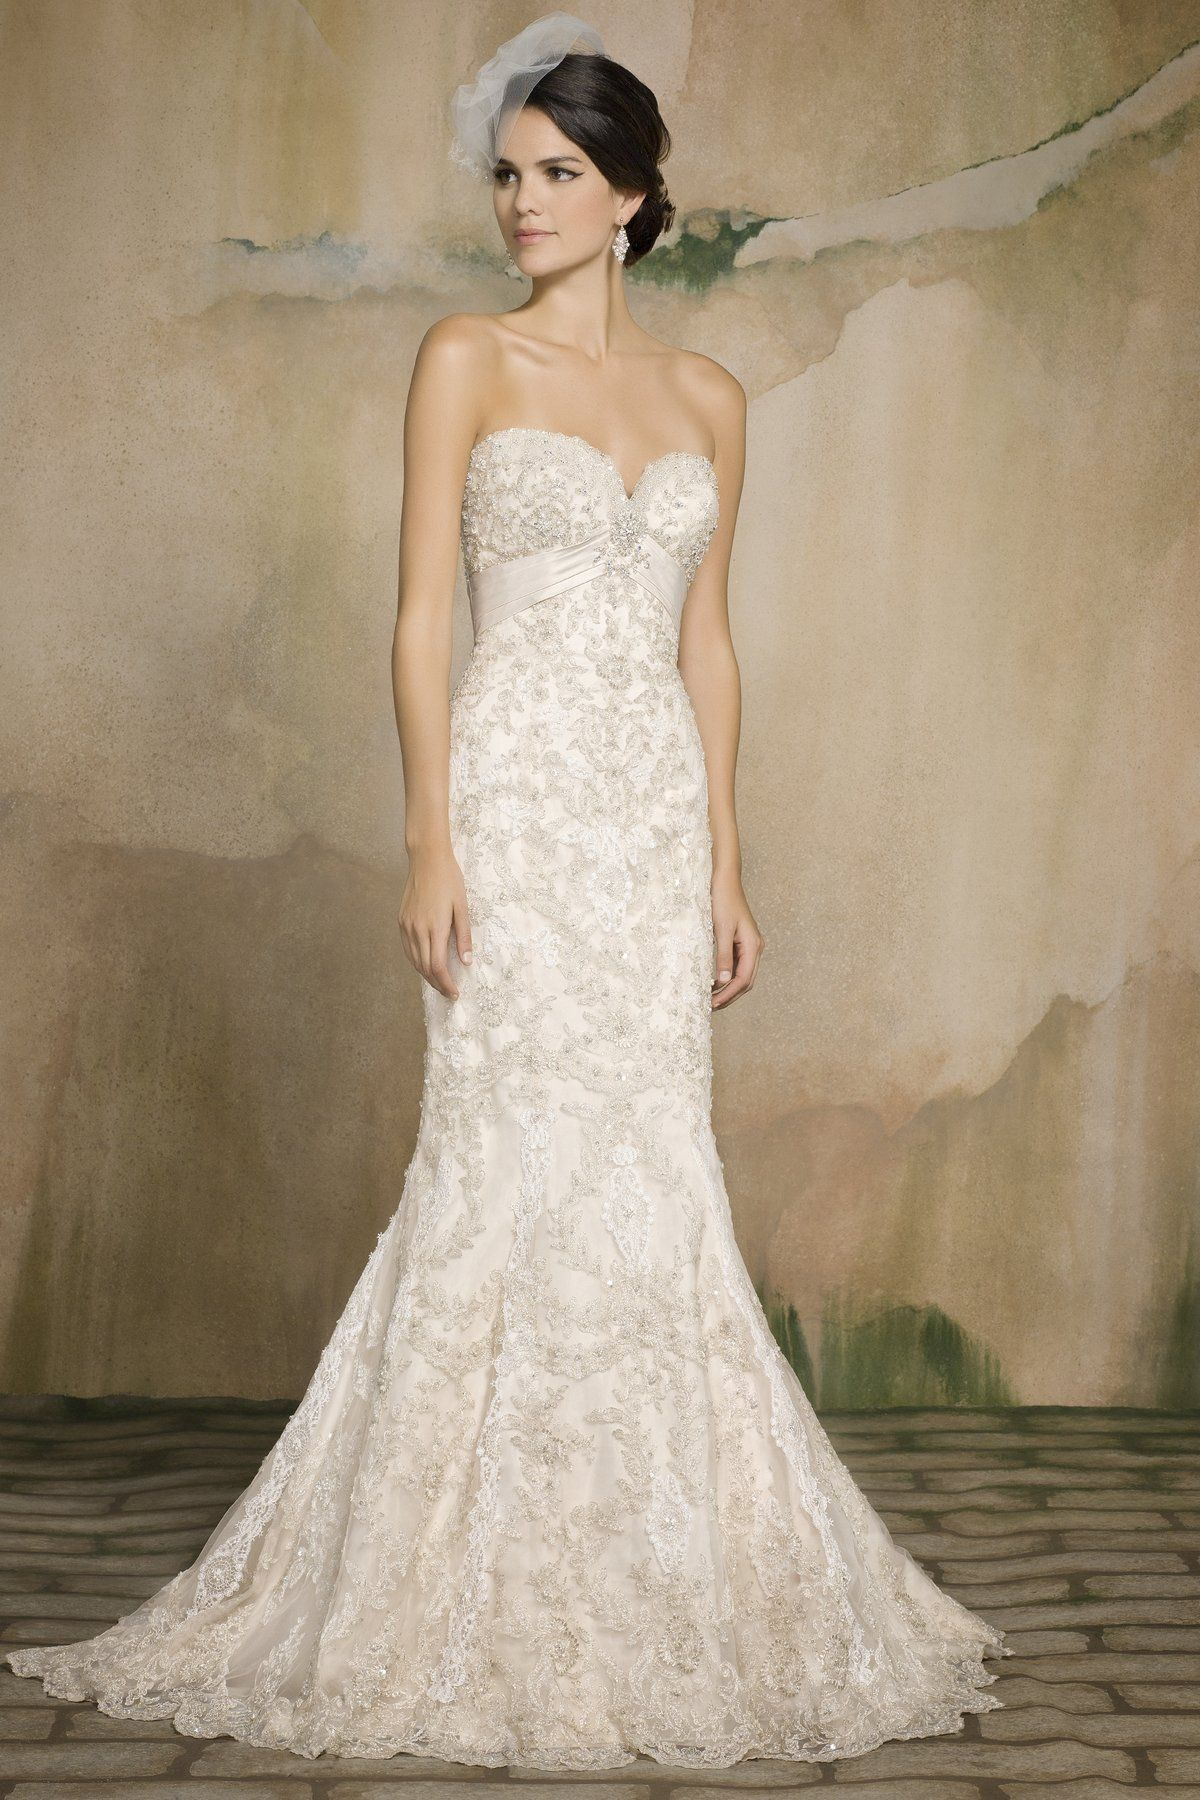 Pearl Bridal Style Wedding Dresses Wedding Dress Couture Online Wedding Dress